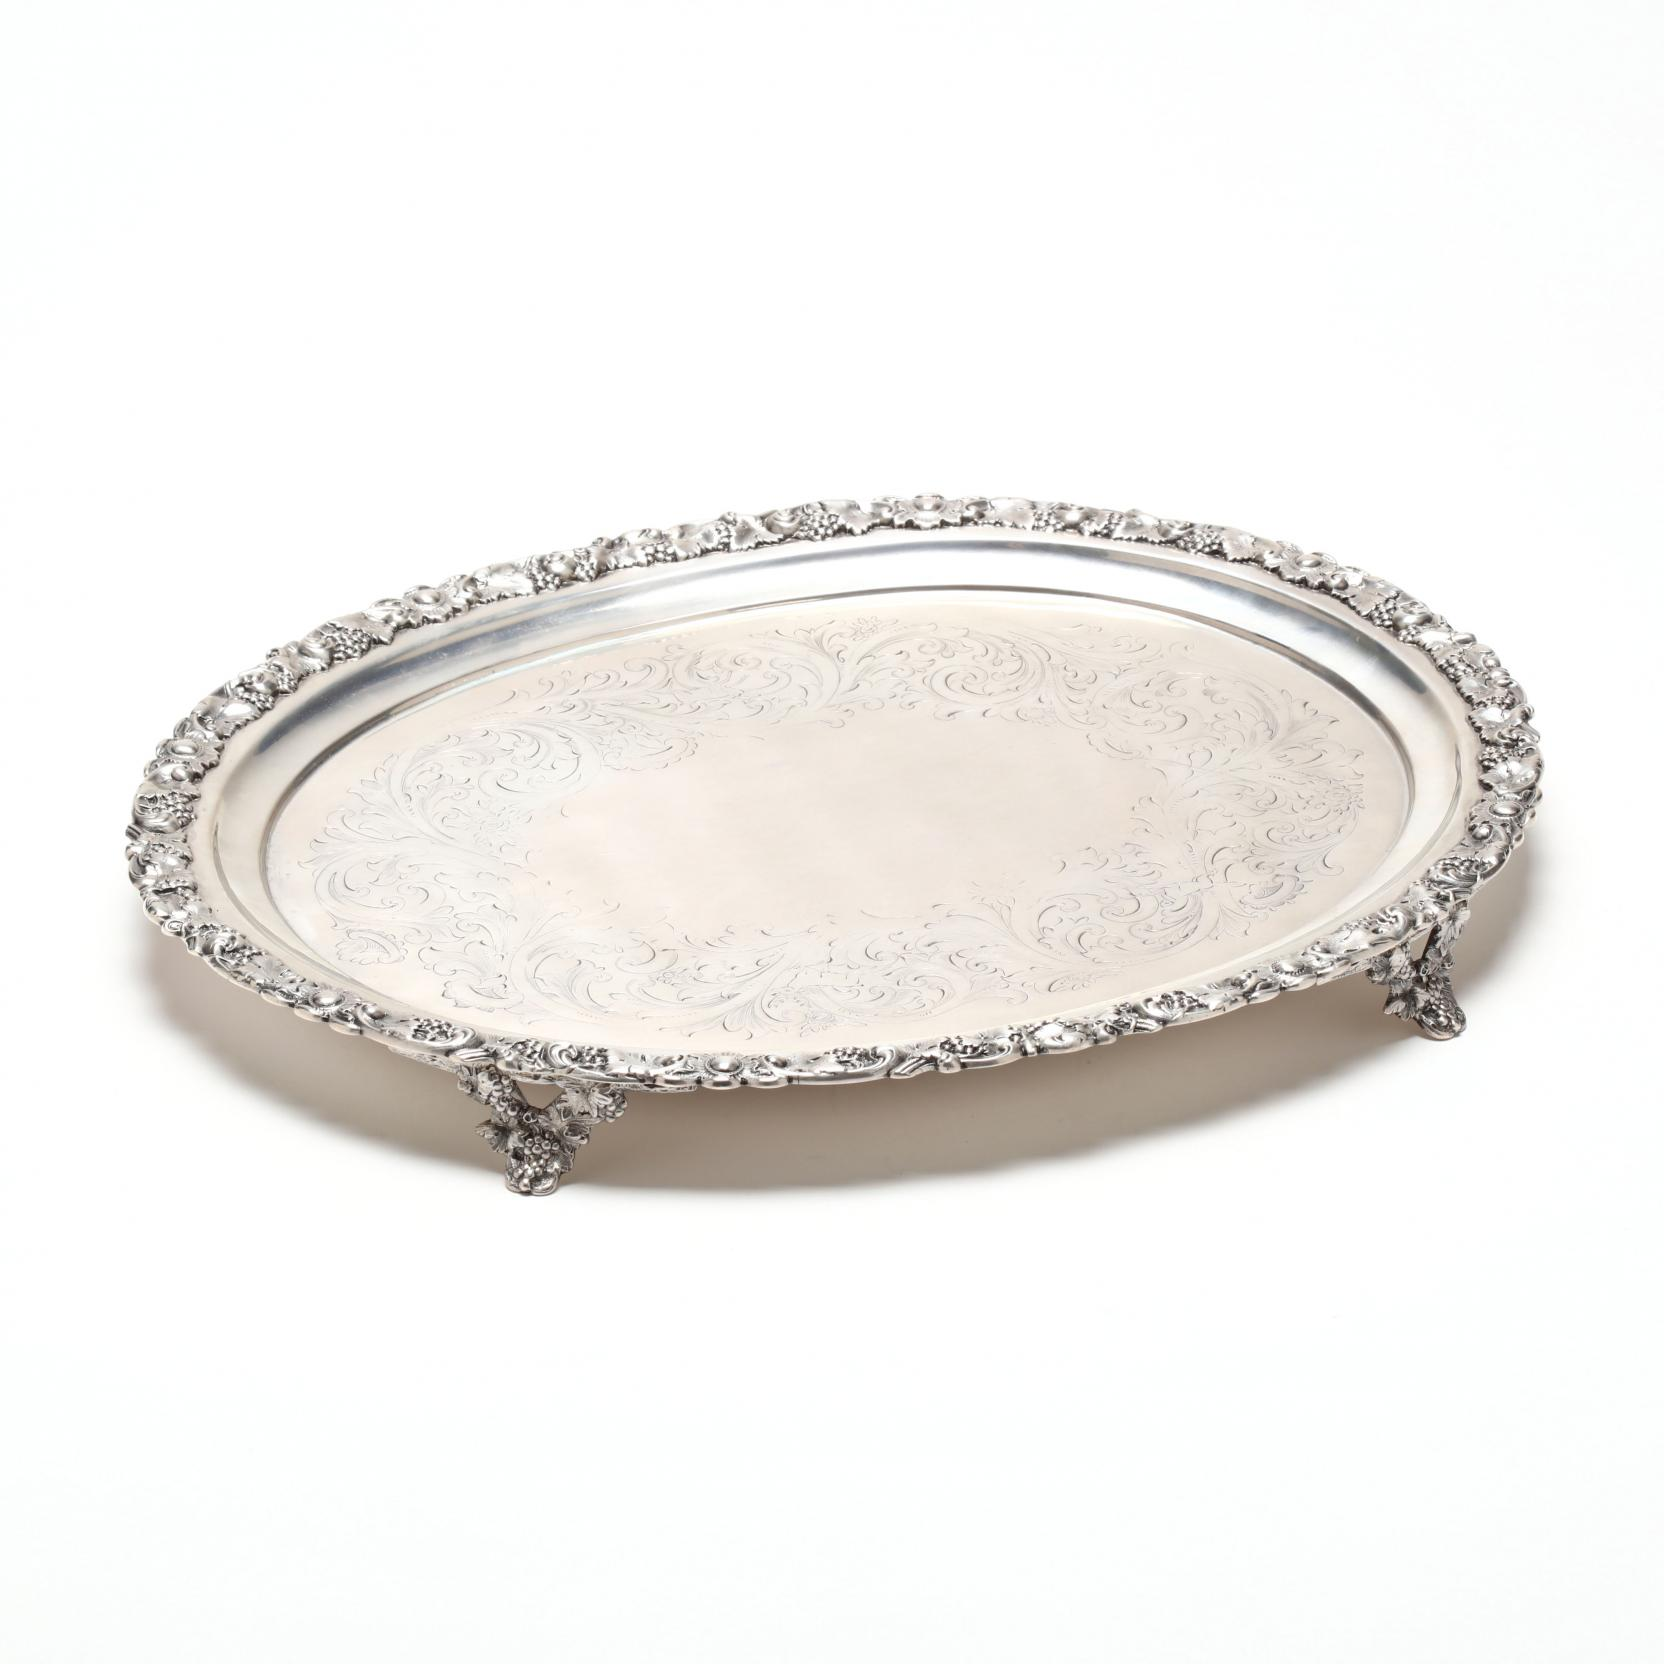 a-large-american-coin-silver-footed-tray